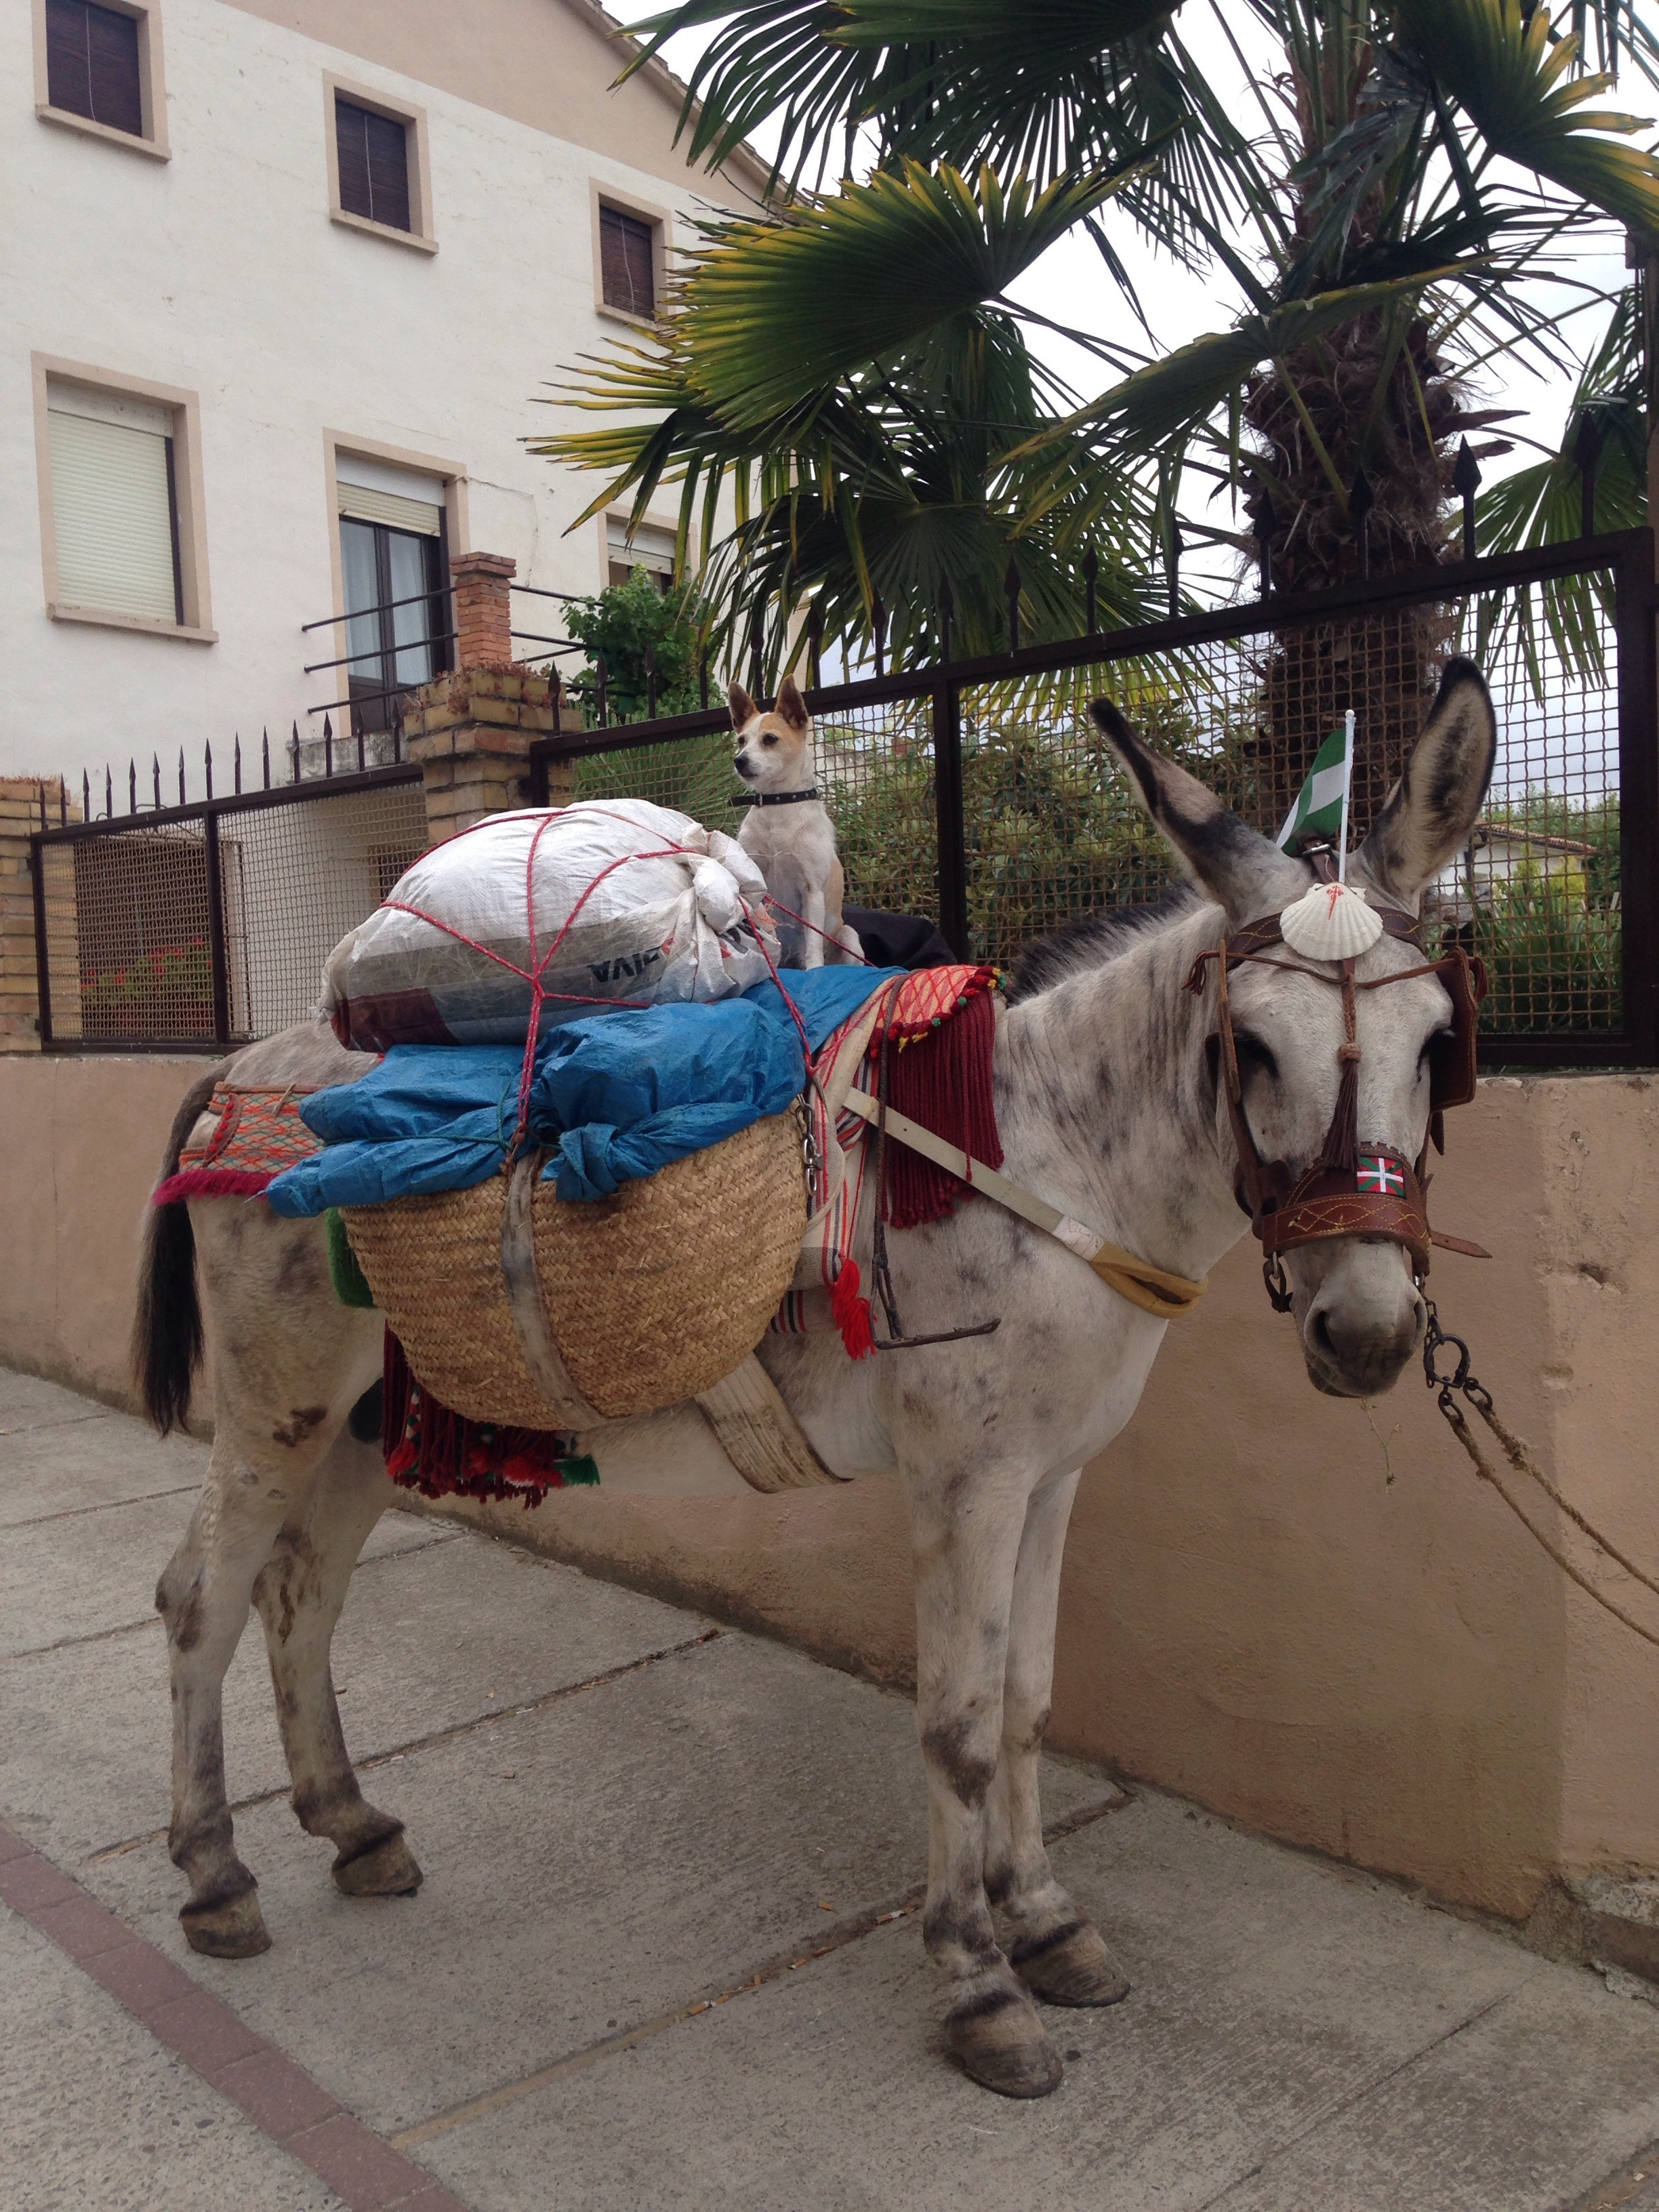 But I caught up. Note the shell on the donkey... They are in pilgrimage too!